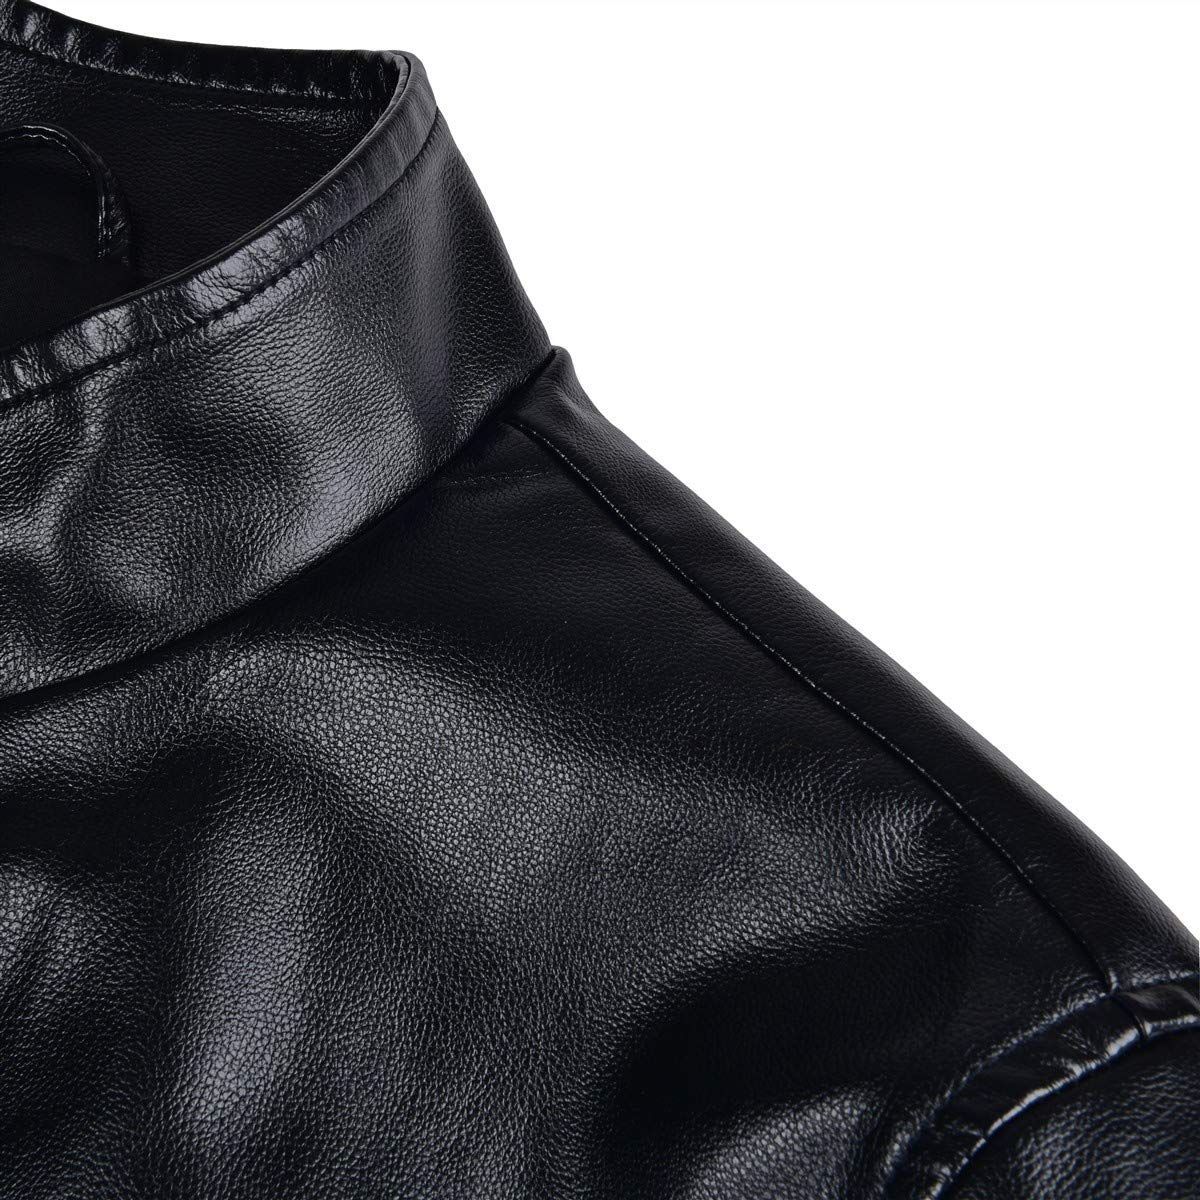 FEICUI Mens Faux Leather Jacket Casual Stand Collar PU Leather Outwear